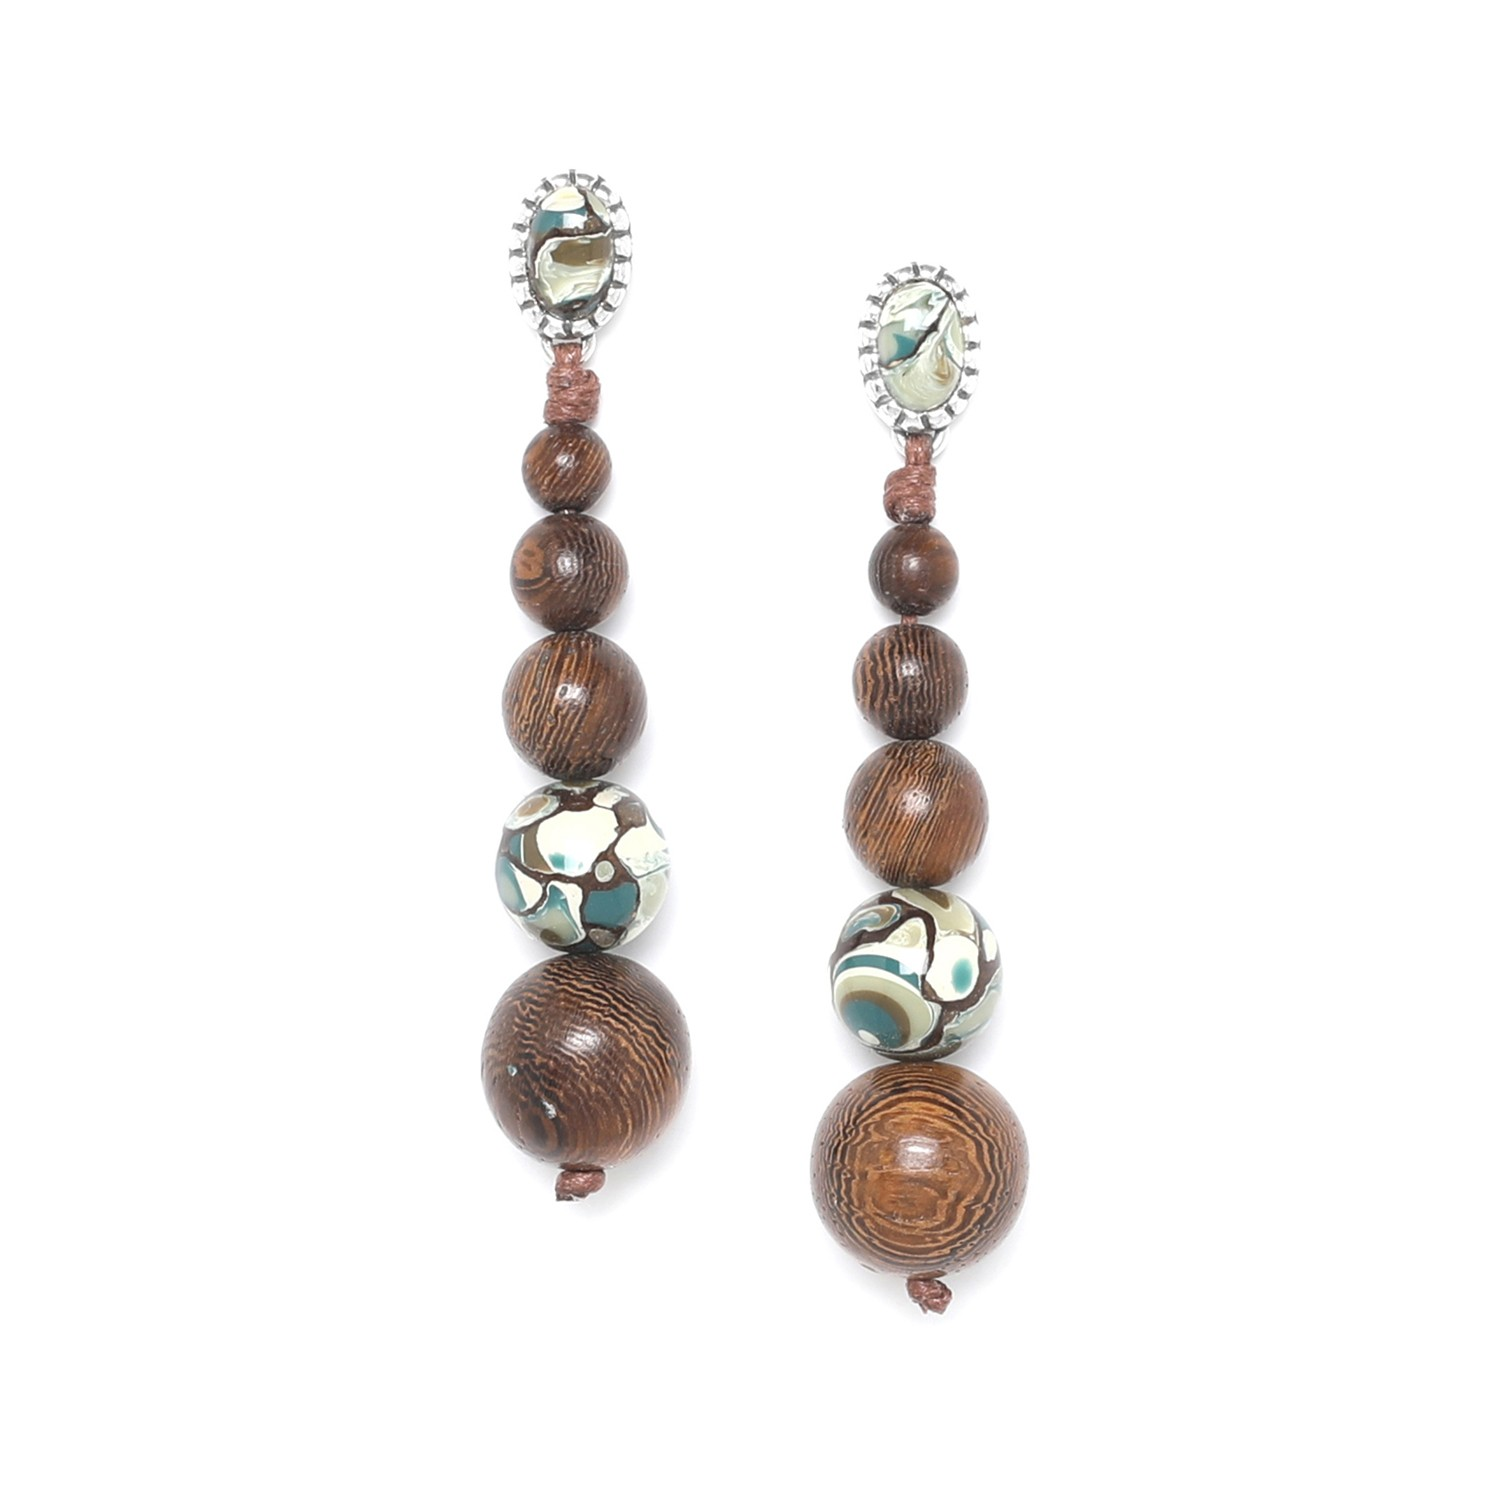 GREENWAY graduated beads earrings